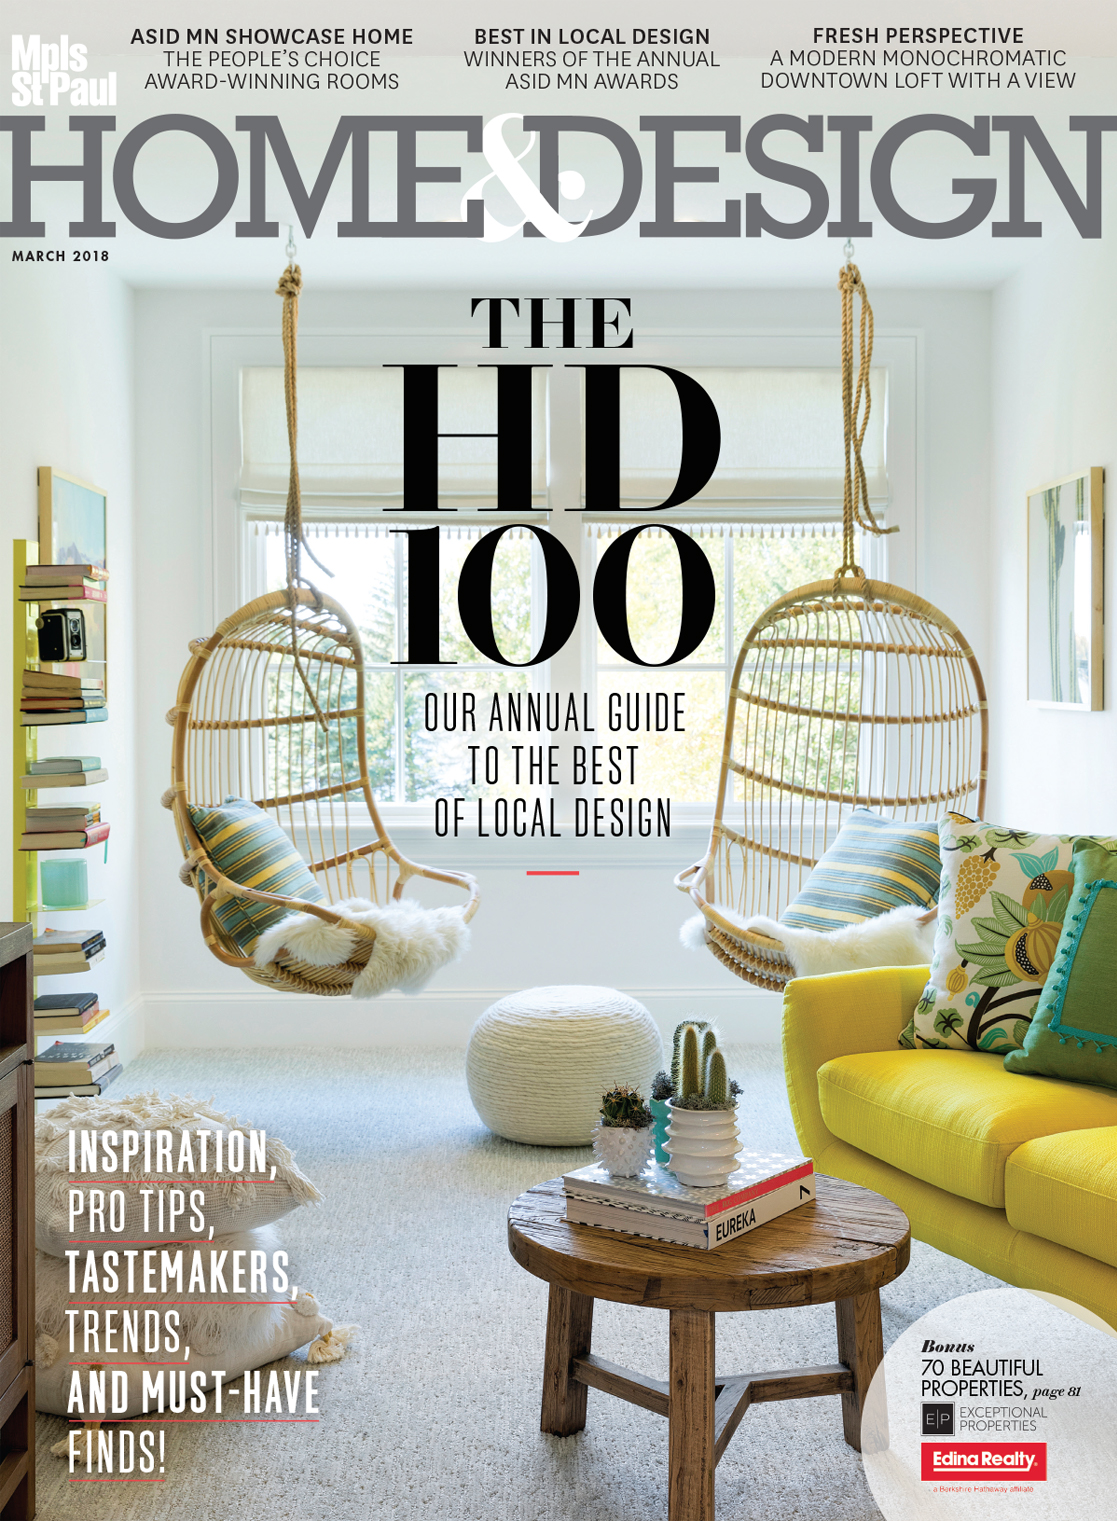 Our award-winning projects were featured in the spring issue of Mpls.St.Paul  Home & Design.